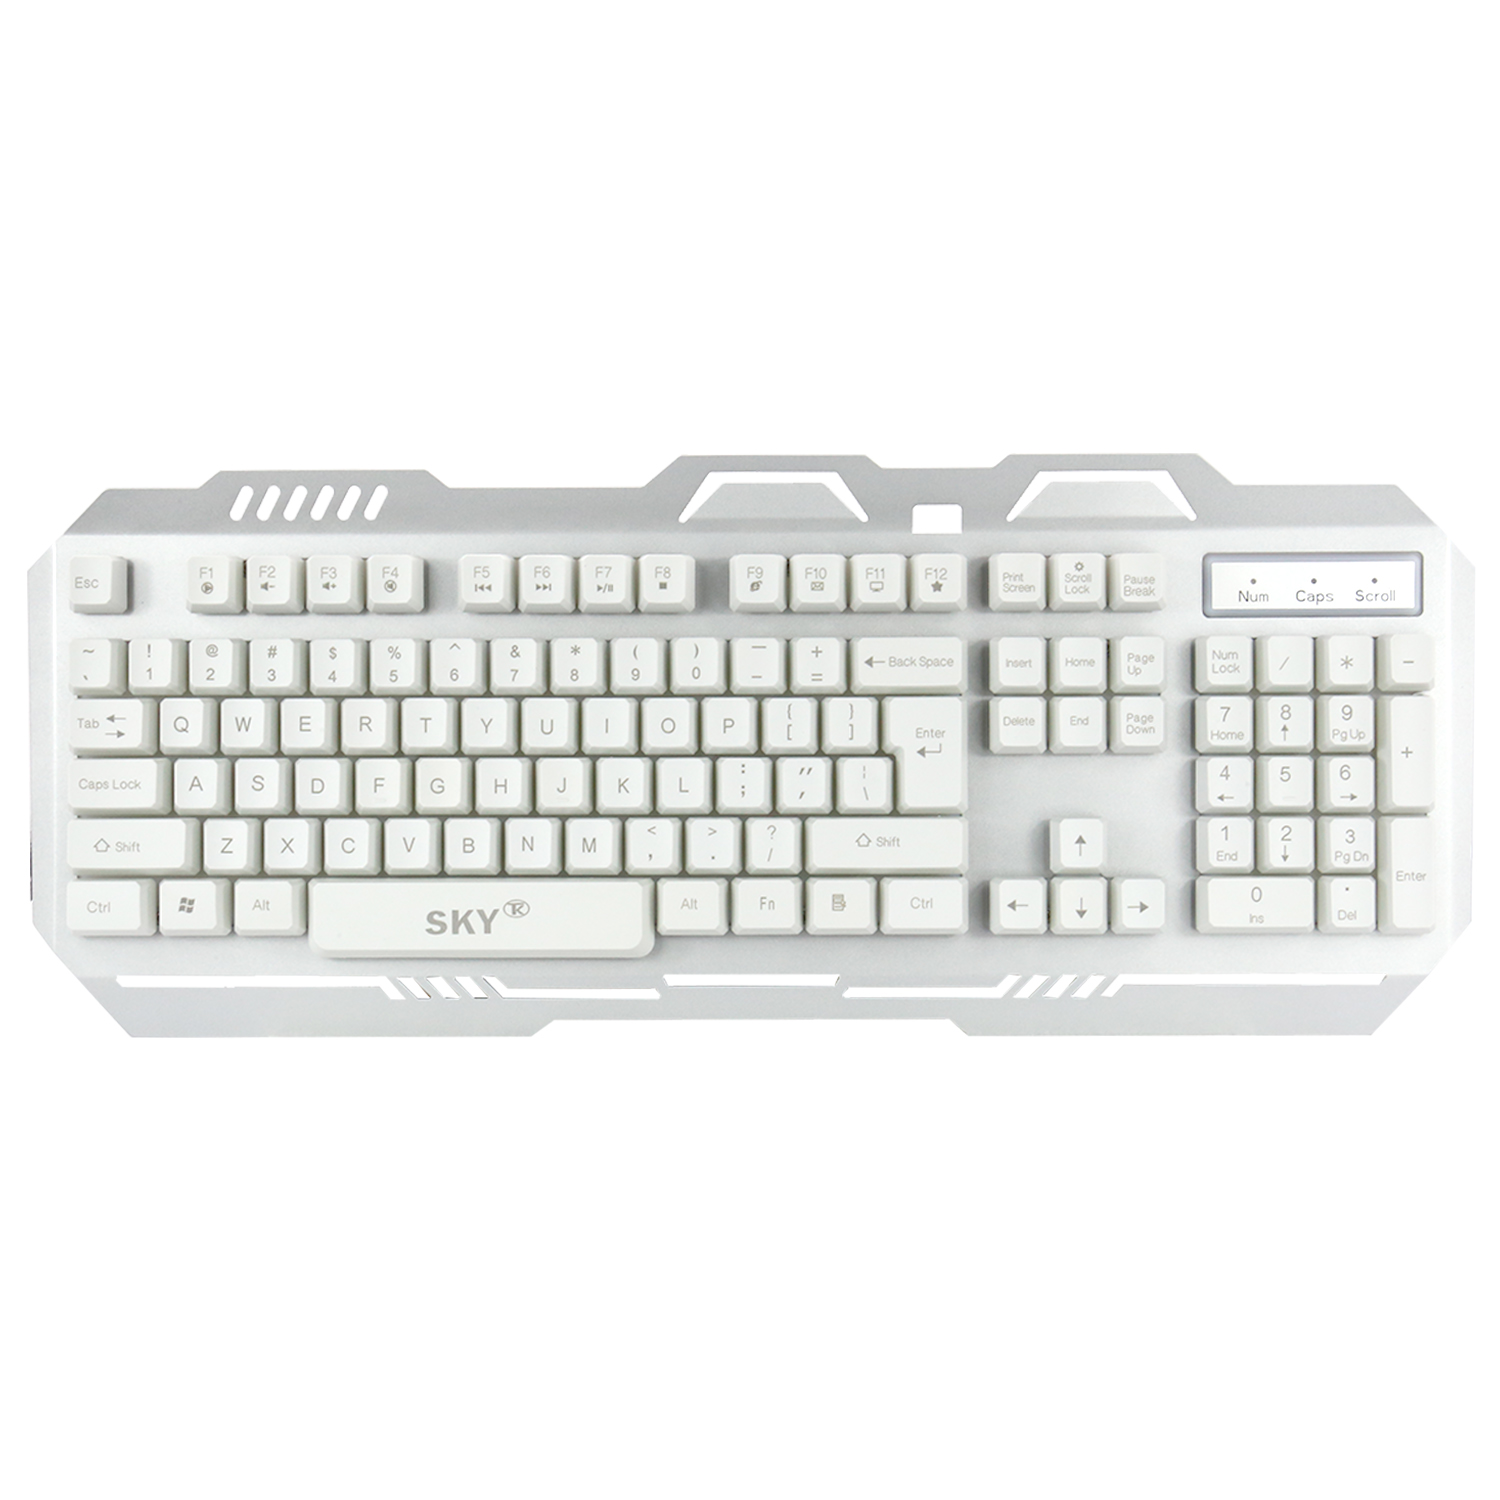 Computer New Wired Gaming Keyboard with Rainbow Backlight for Laptop and Desktop